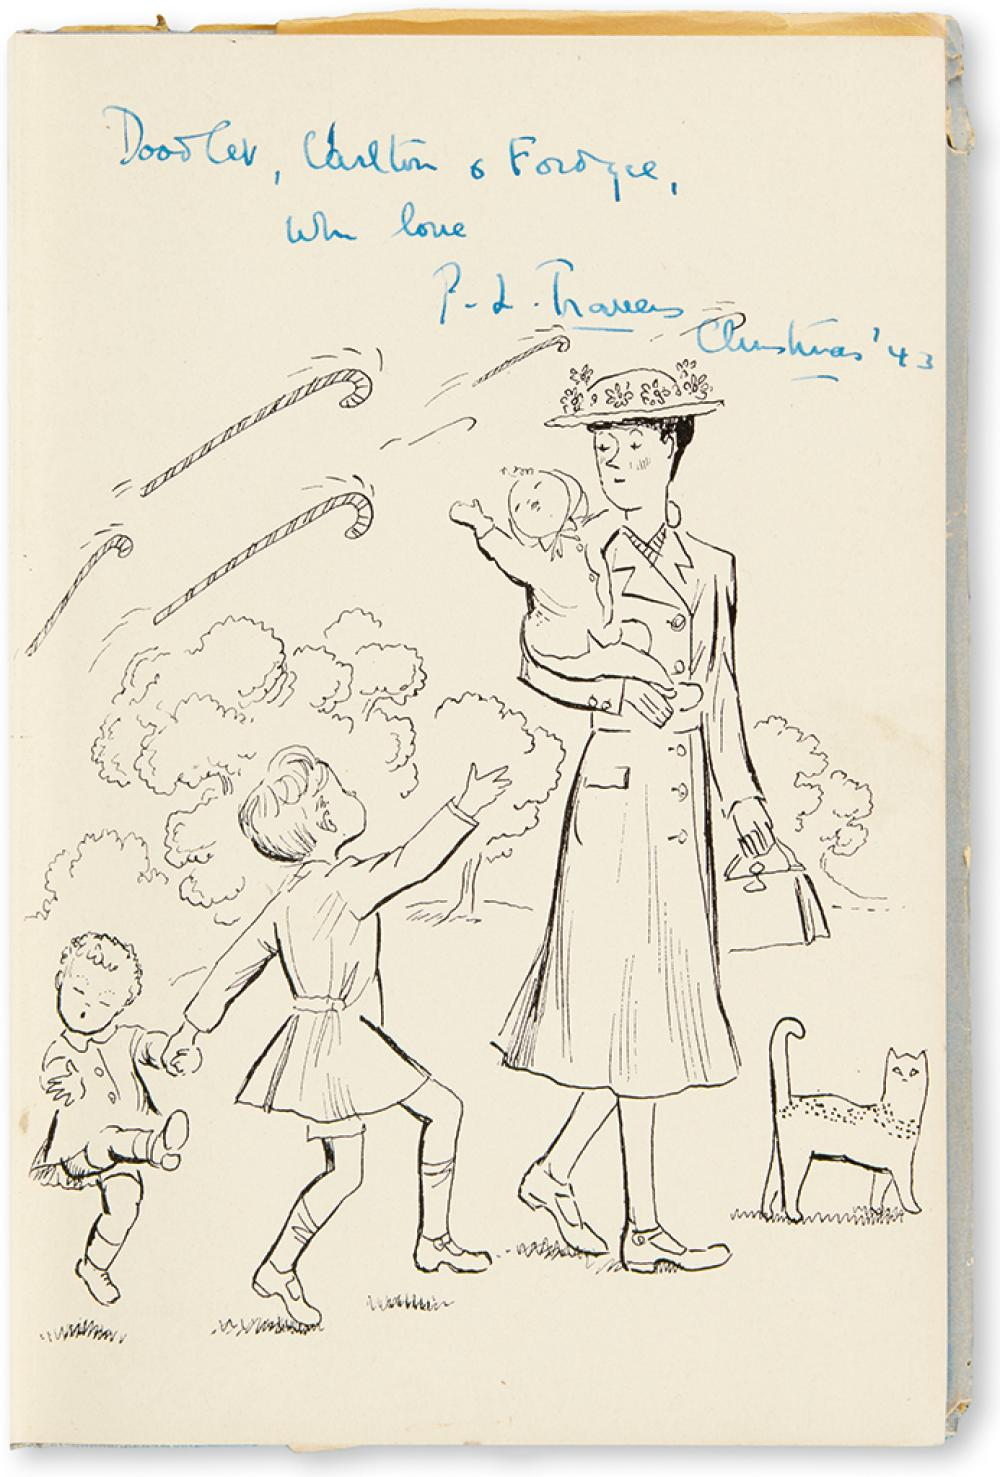 (CHILDREN'S LITERATURE.) TRAVERS, P.L. Mary Poppins Comes Back * Mary Poppins Opens the Door.